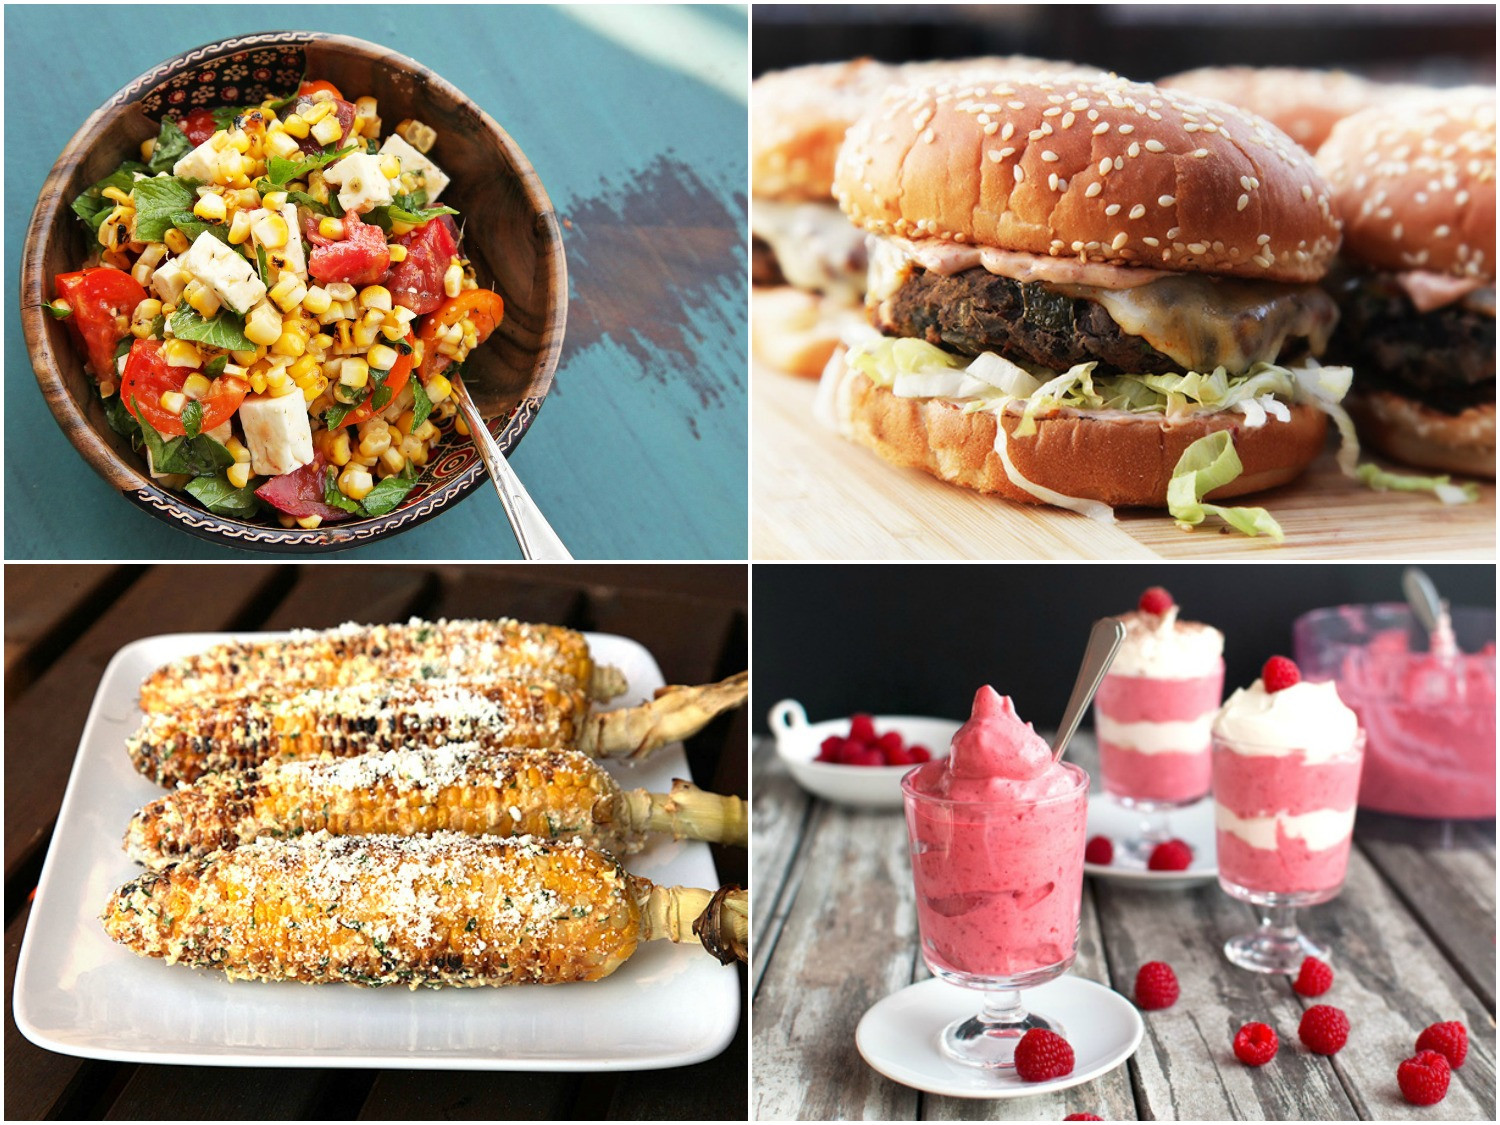 Vegetarian 4Th Of July Recipes  A Killer Ve arian Fourth of July Menu Even an Omnivore